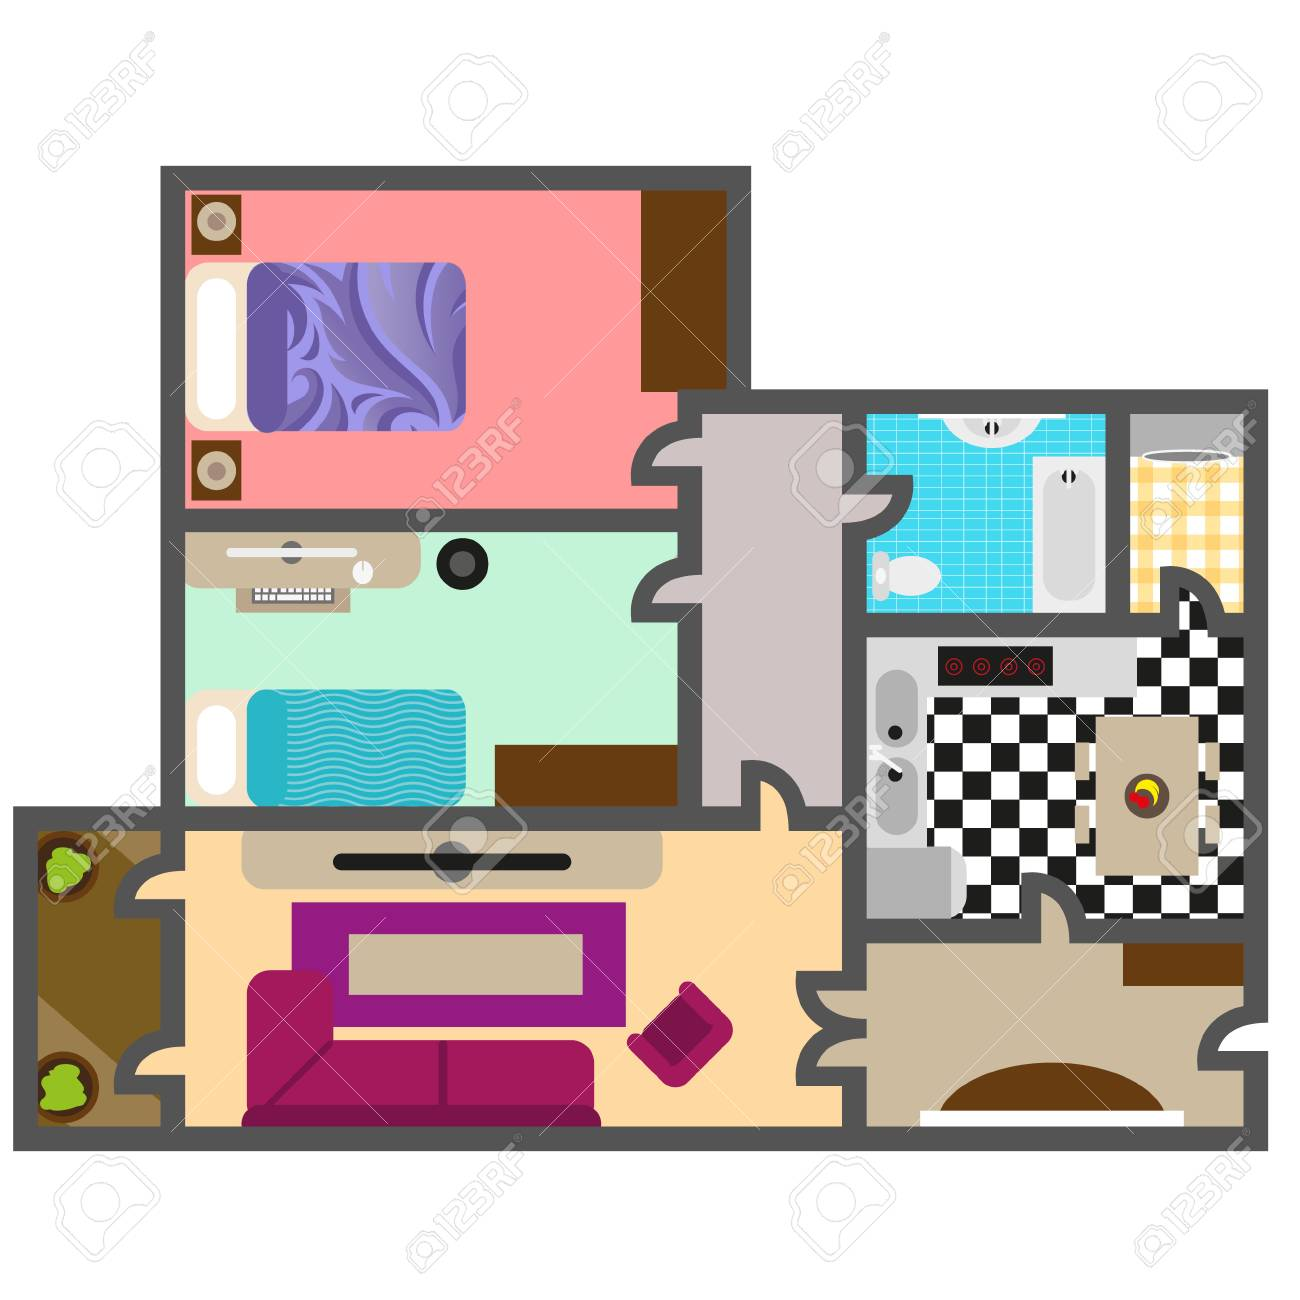 House Floor Plan Vector For Your Ideas Royalty Free Cliparts